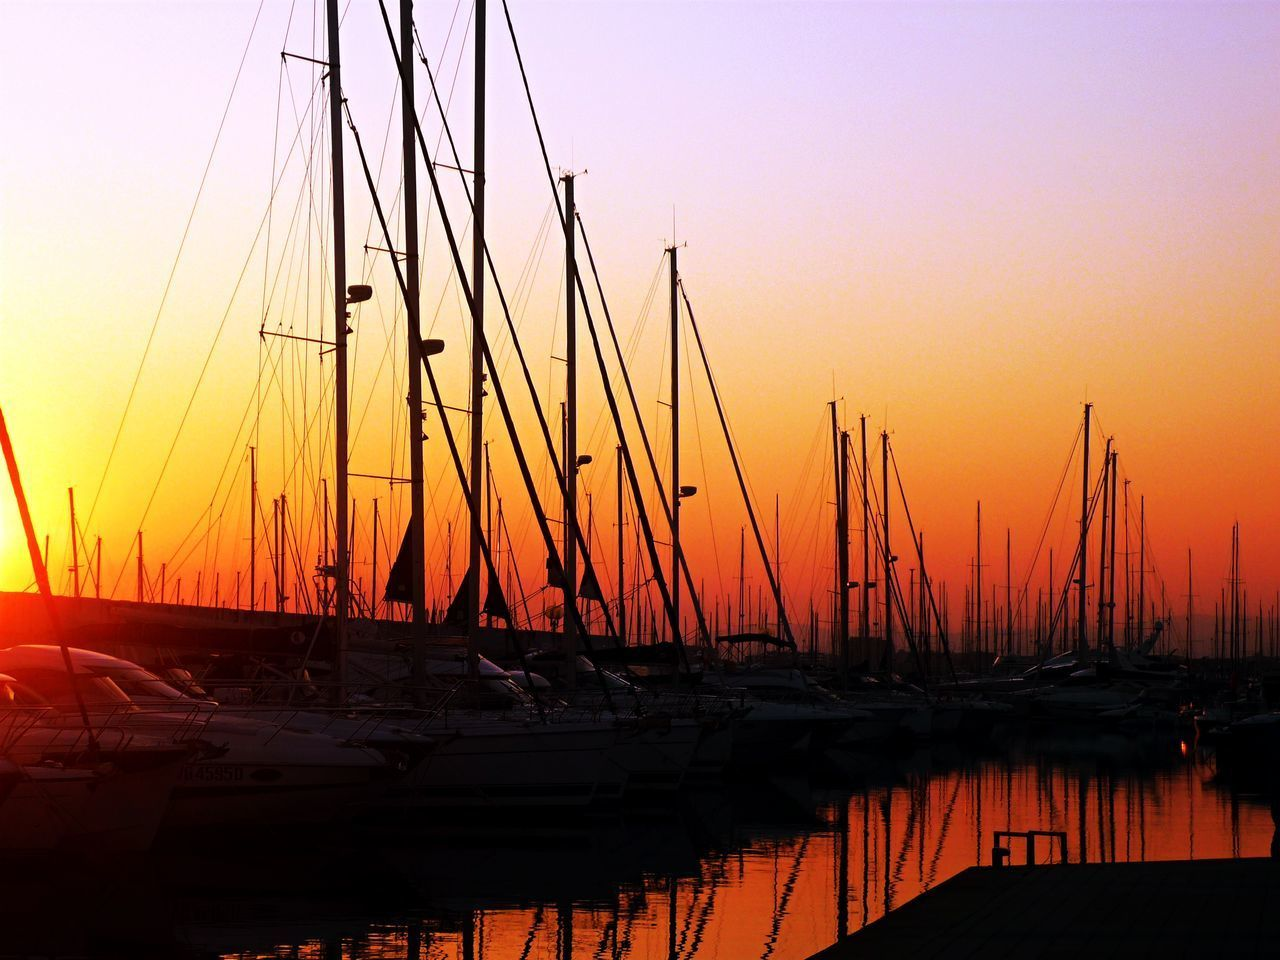 Beauty In Nature Day Harbor Mast Mode Of Transport Moored Nature Nautical Vessel No People Outdoors Sea Sky Sun Sunset Transportation Water Yacht EyeEmNewHere